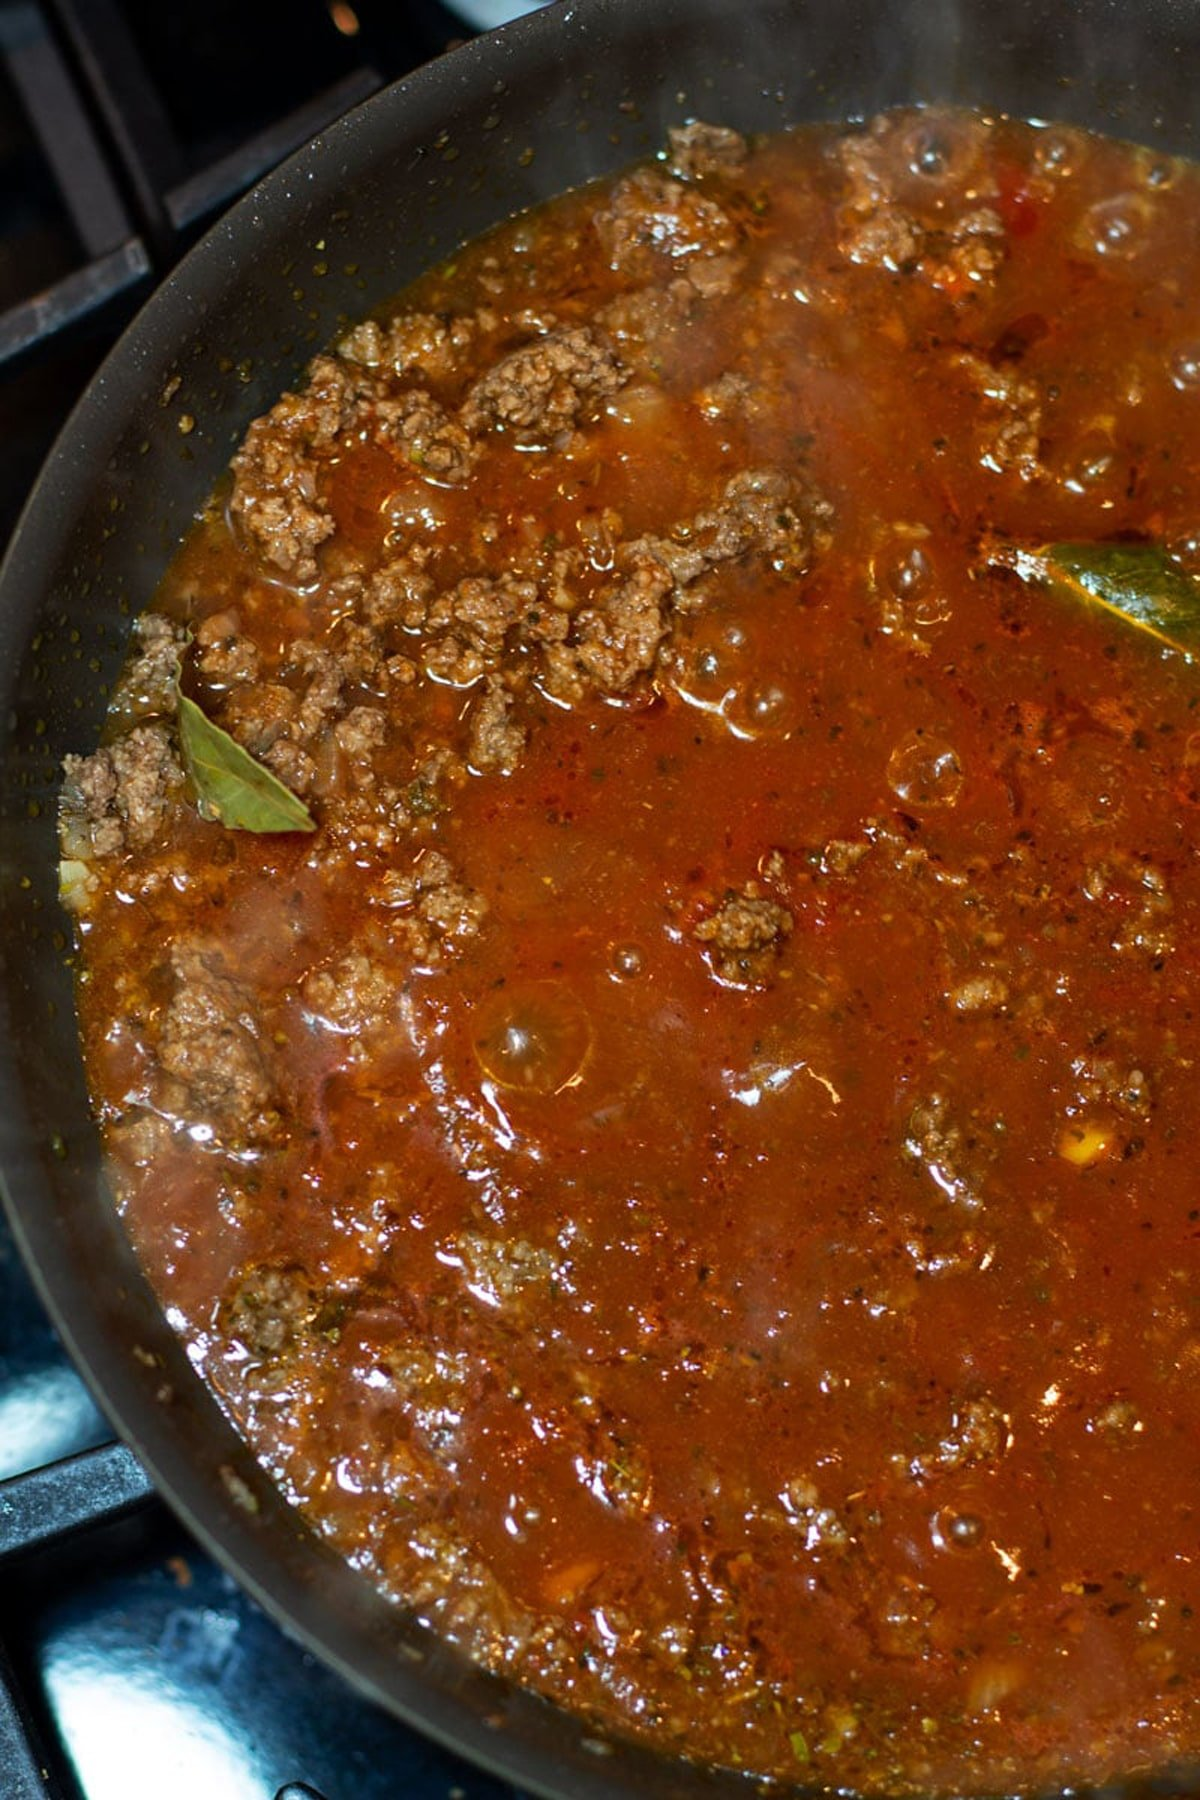 Homemade authentic Italian marinara sauce cooking in a skillet on a stove.